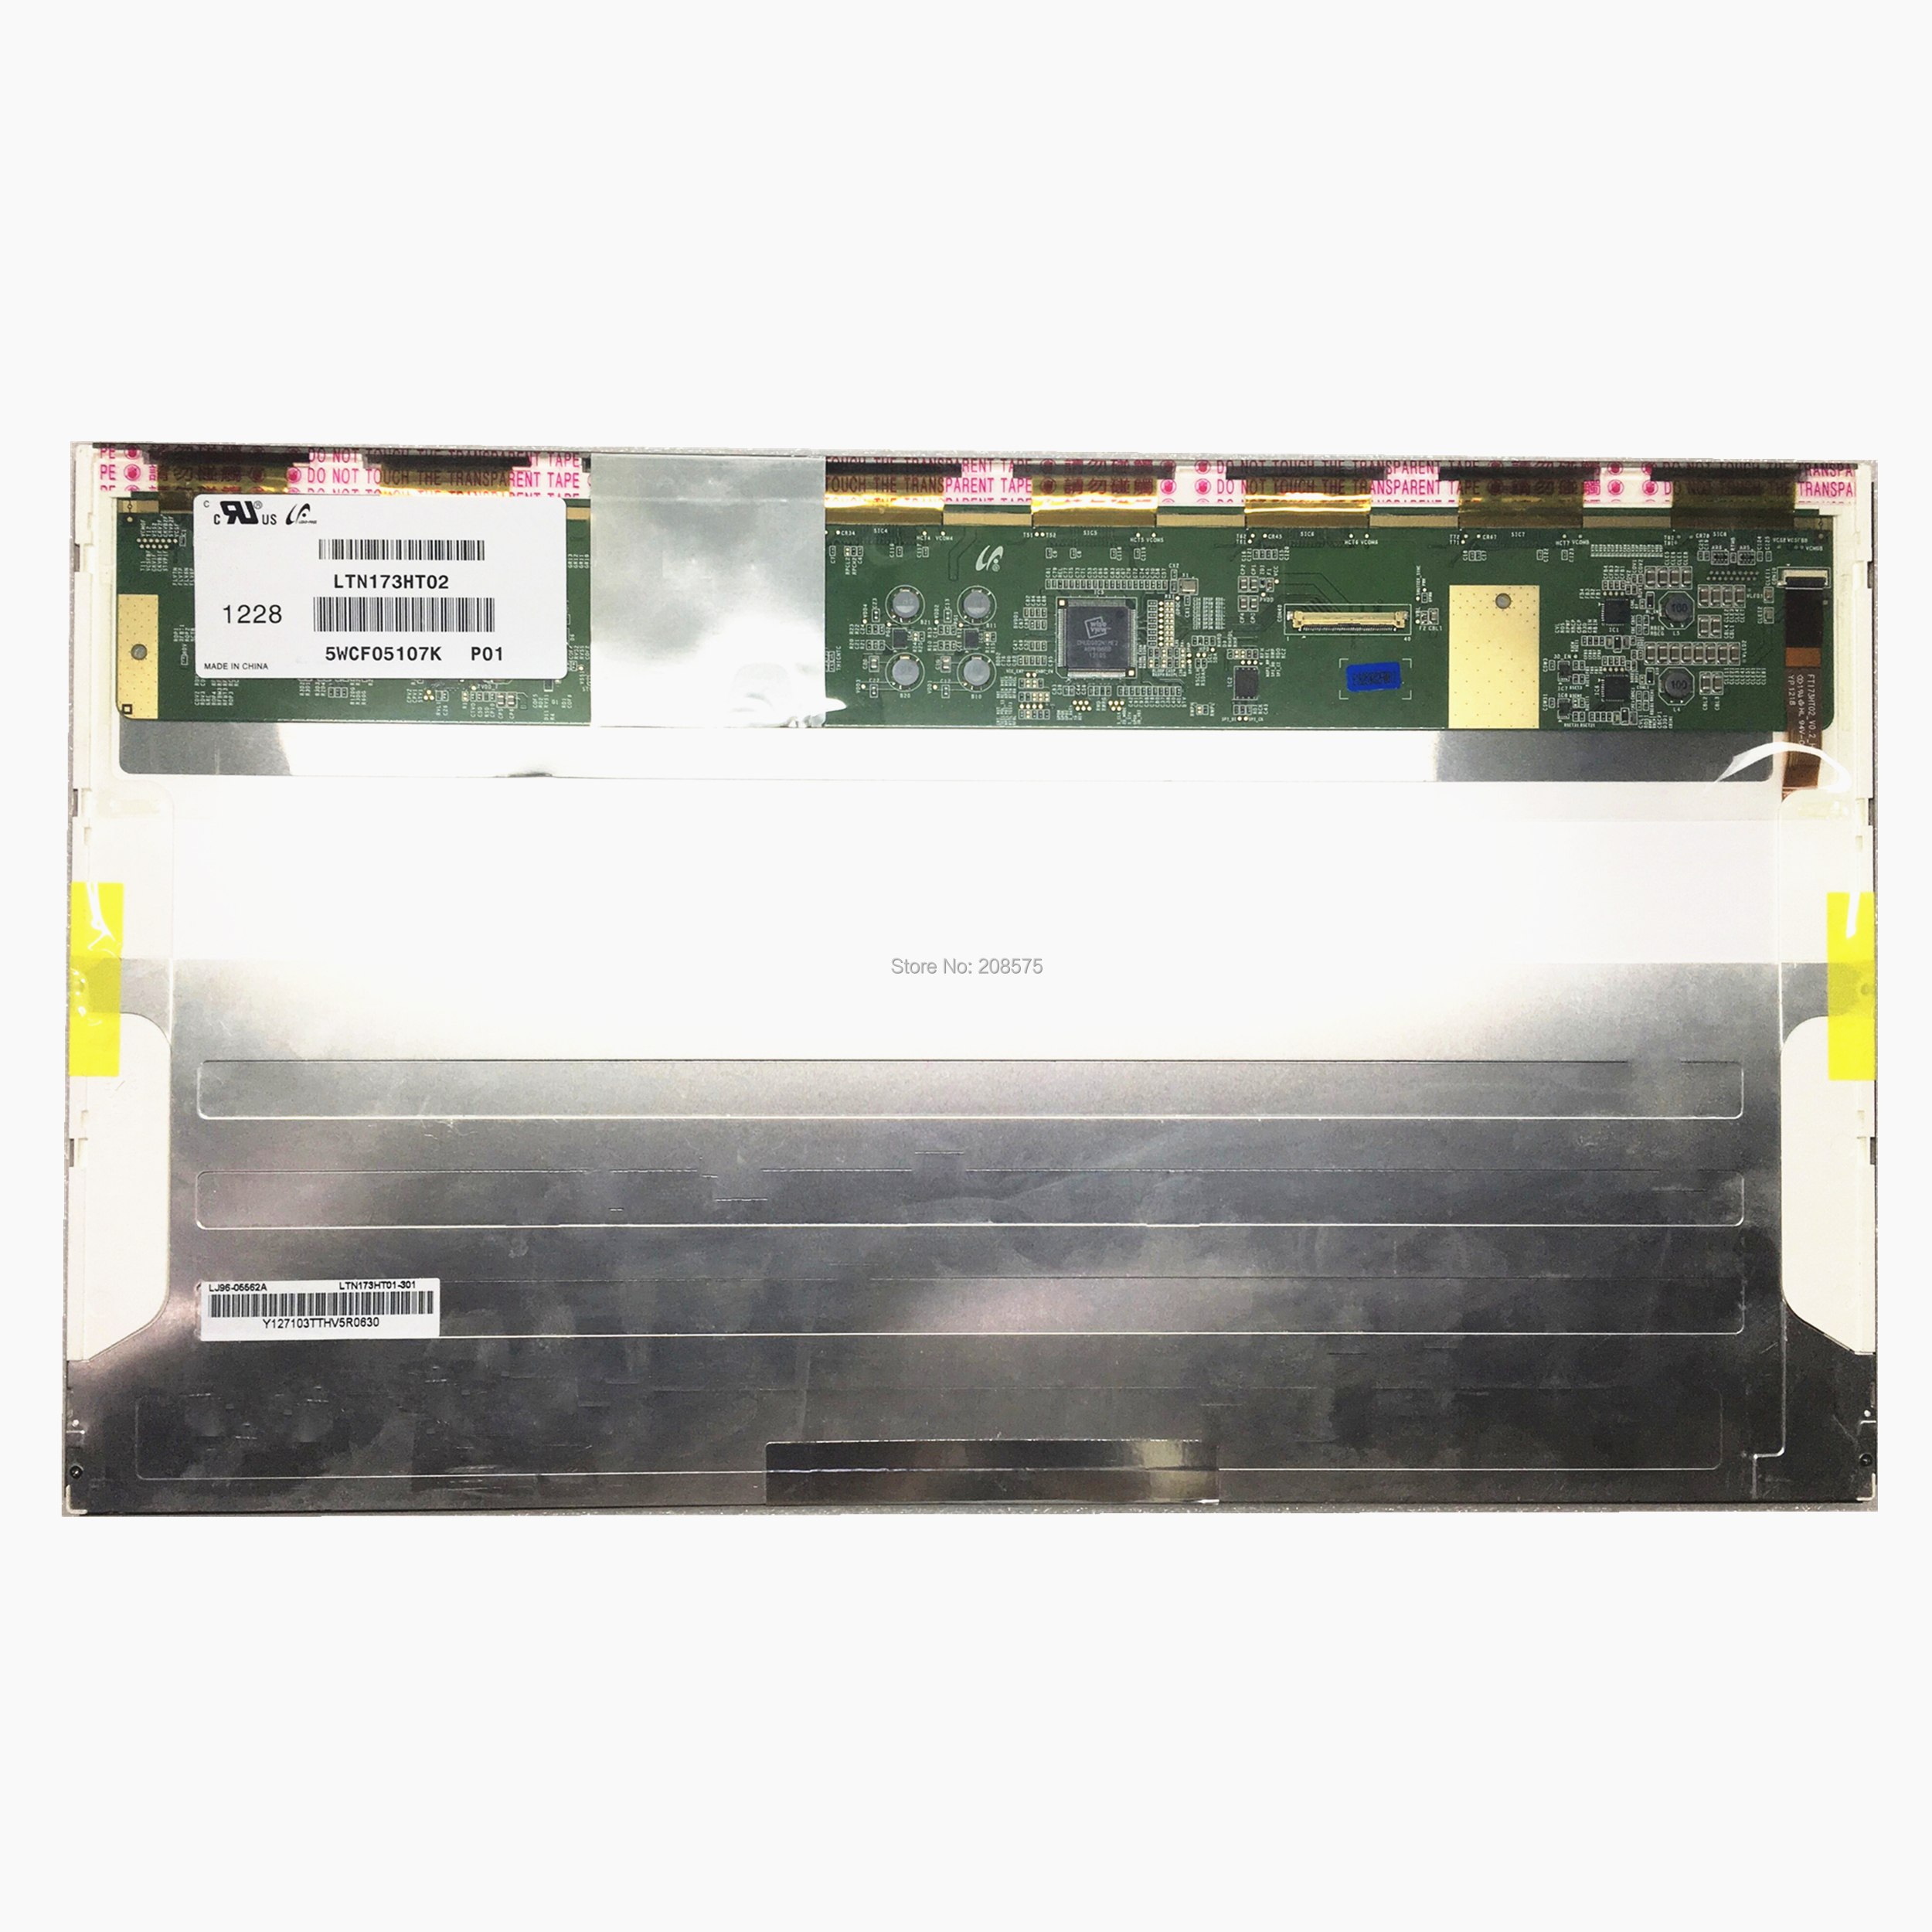 ltn173ht02 p01 - LTN173HT02 P01 for Dell Inspiron 17R 7720 Samsung NP700G7C NP700G7A ASUS  3D Lcd Screen 1920*1080